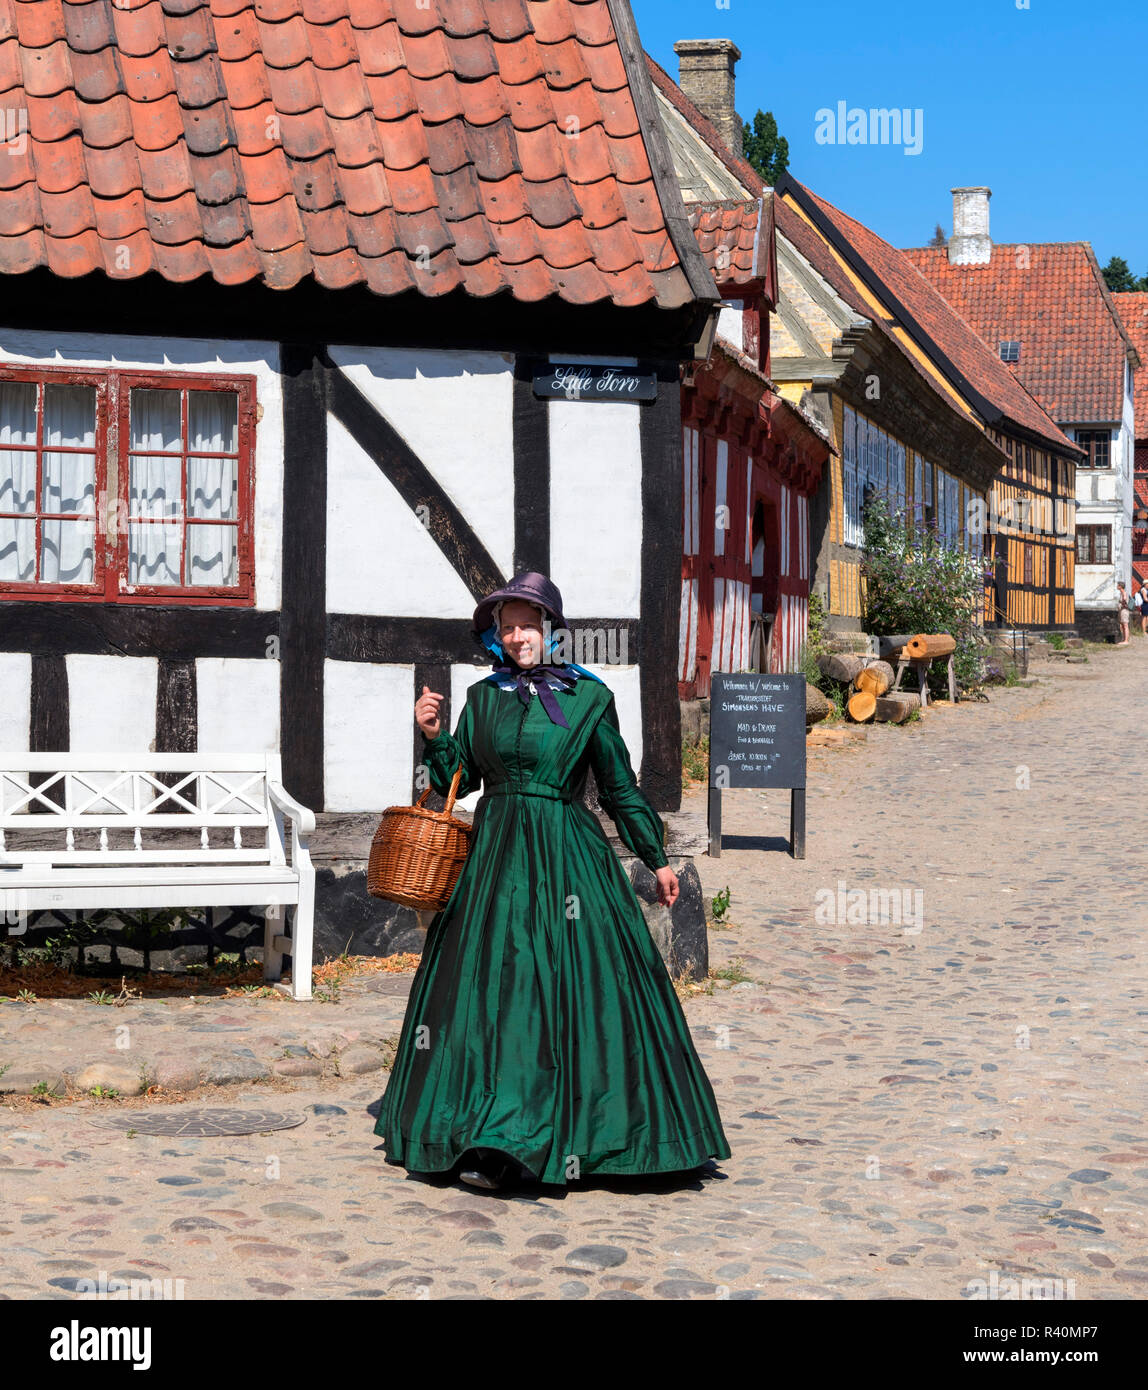 Woman dressed in period costume in The Old Town (Den Gamle By), an open air museum in Aarhus, Denmark - Stock Image